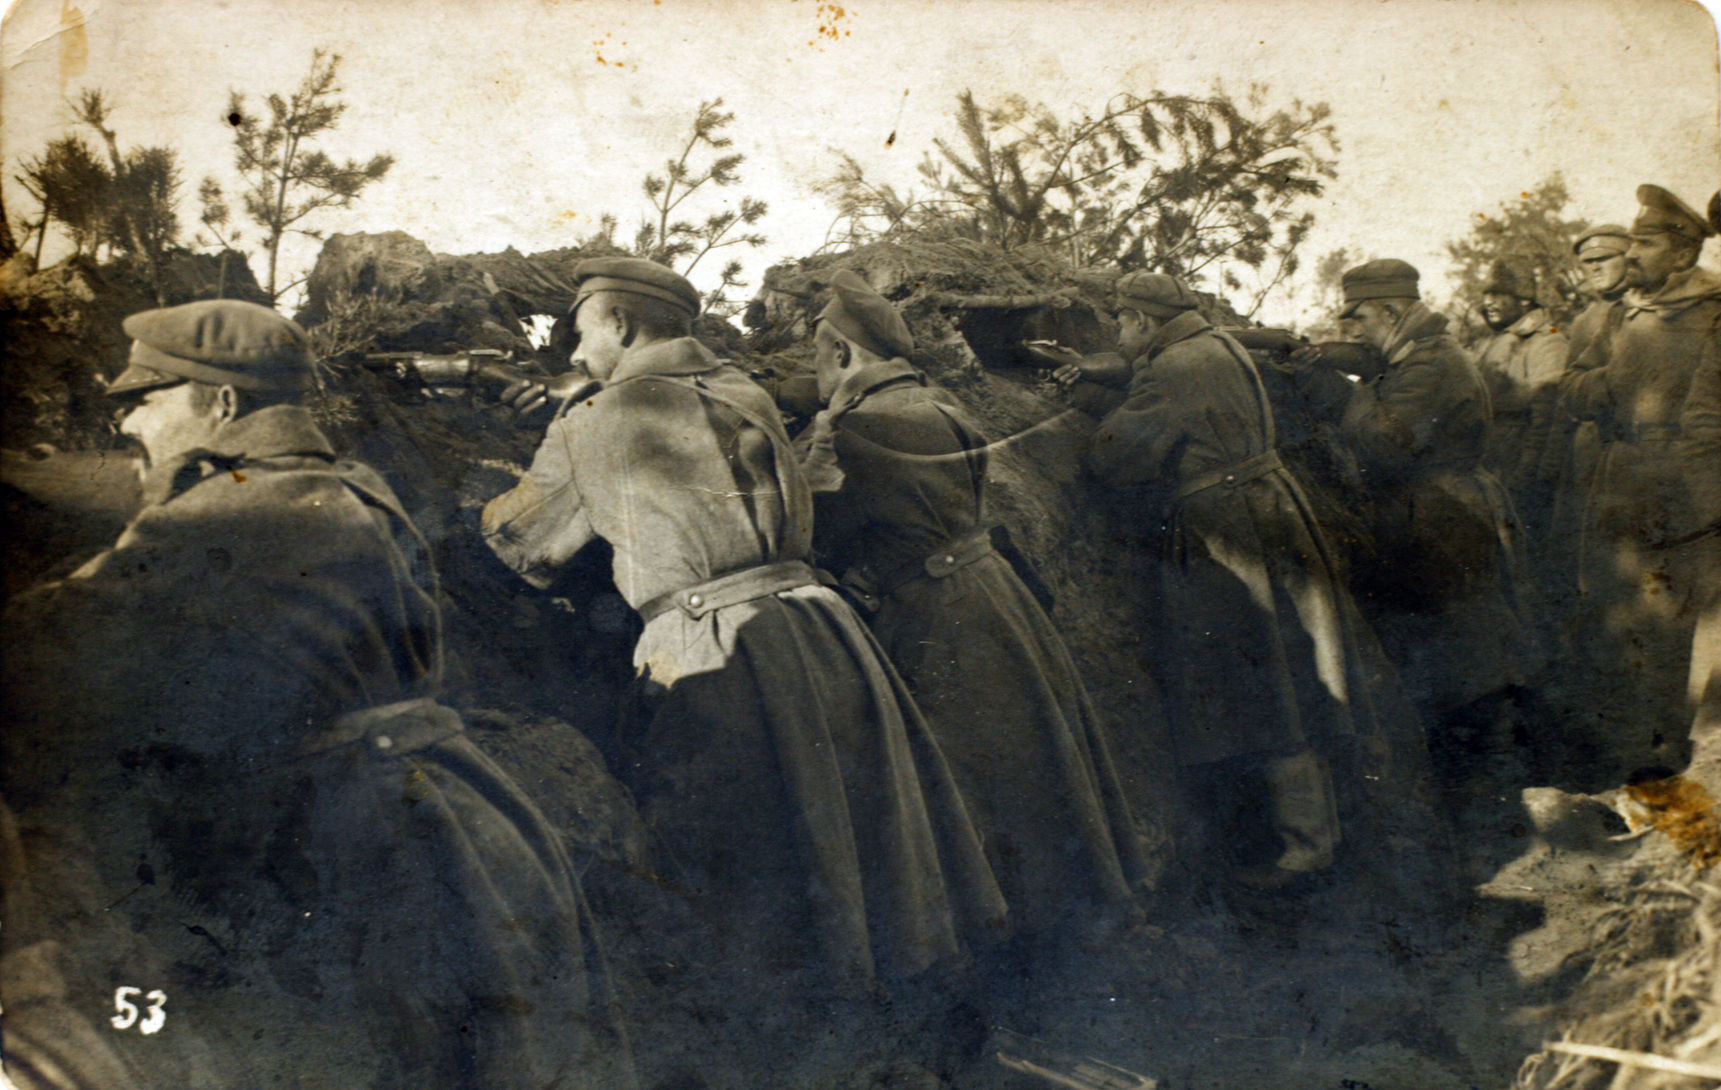 Wwi Christmas Truce.The Christmas Truce Of World War I News The Independent